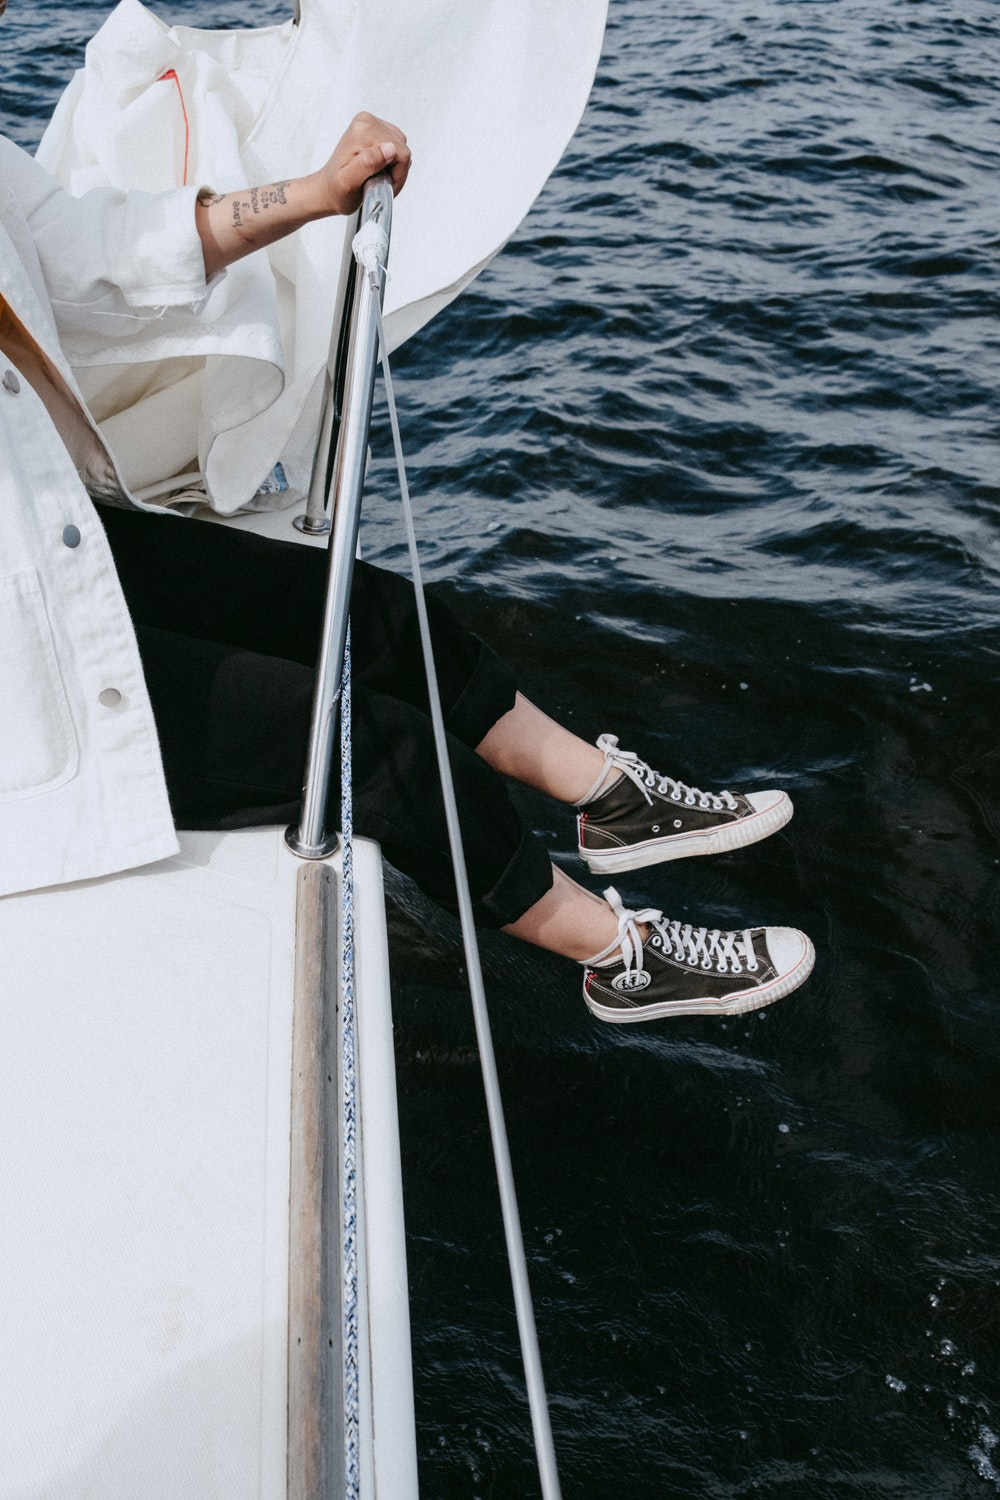 GLOBAL SNEAKERS MARKET TO GROW BY 30% AND HIT $102.8B VALUE BY 2025